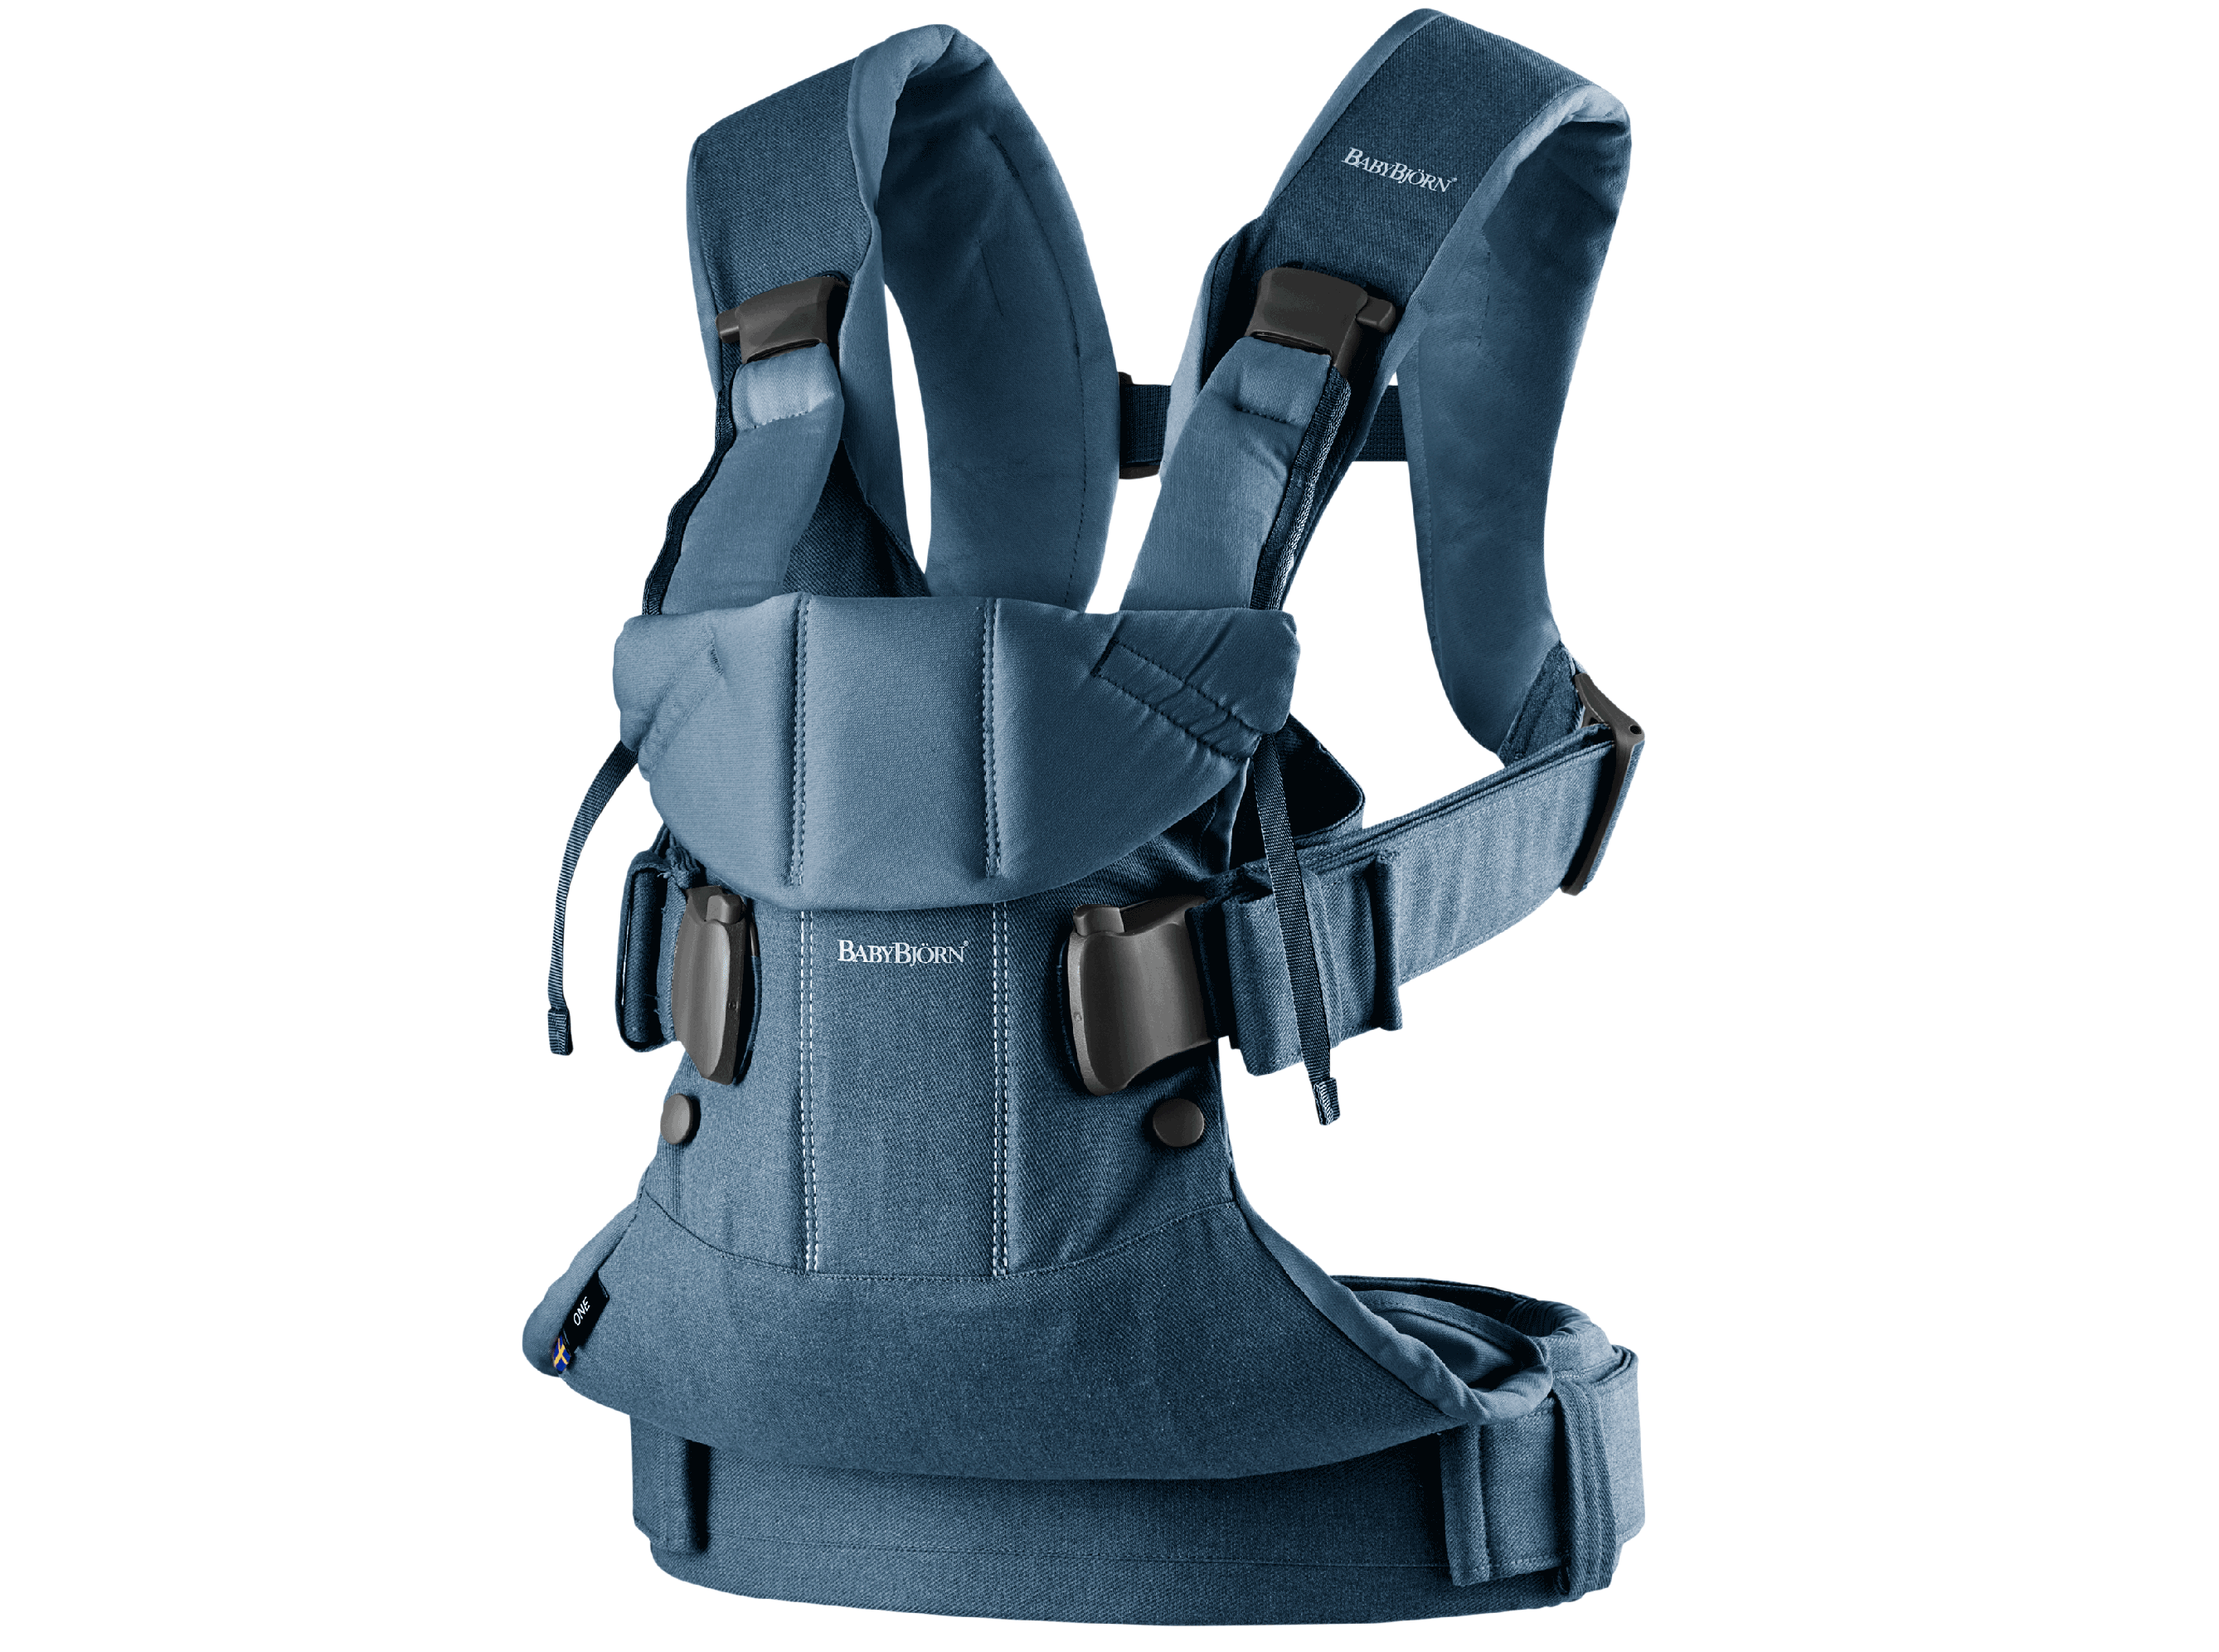 Baby Carrier One in blue denim and midnight blue cotton mix, an ergonomic, soft and flexible baby carrier that can be used from new born to 3 years old, including front facing and back carrying.